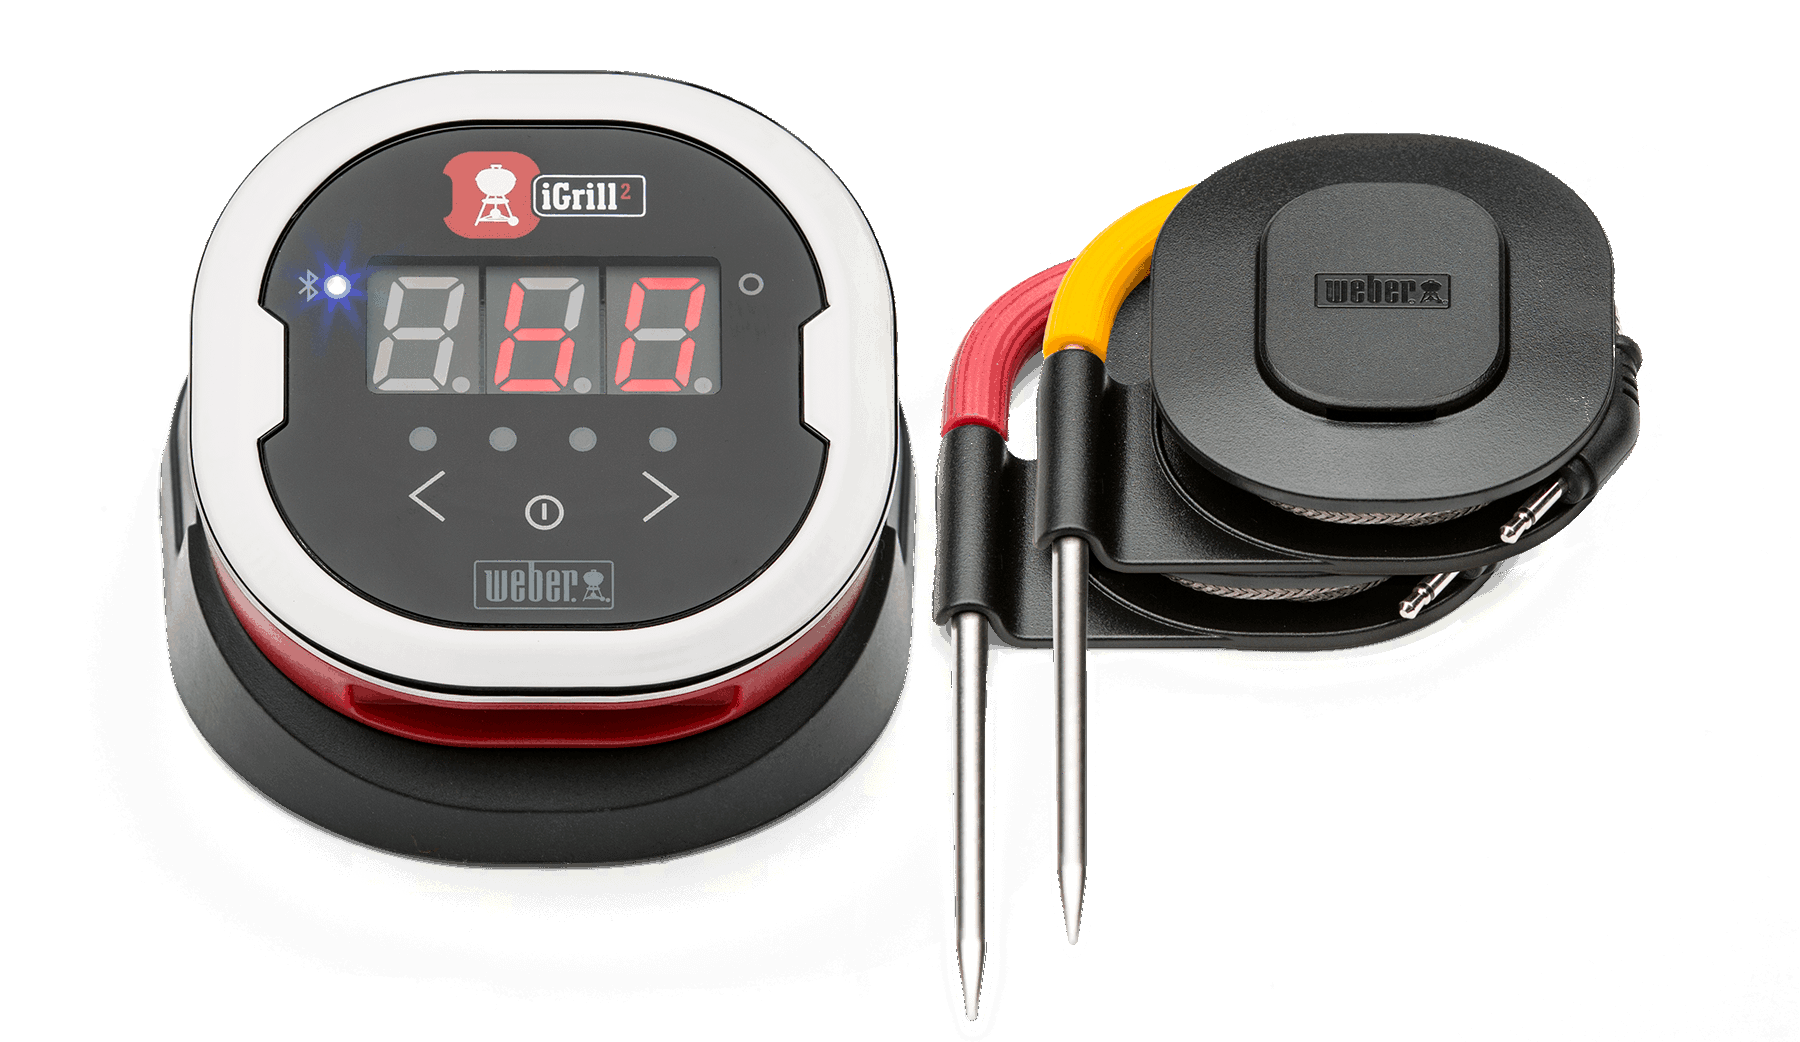 Weber iGrill Thermometer